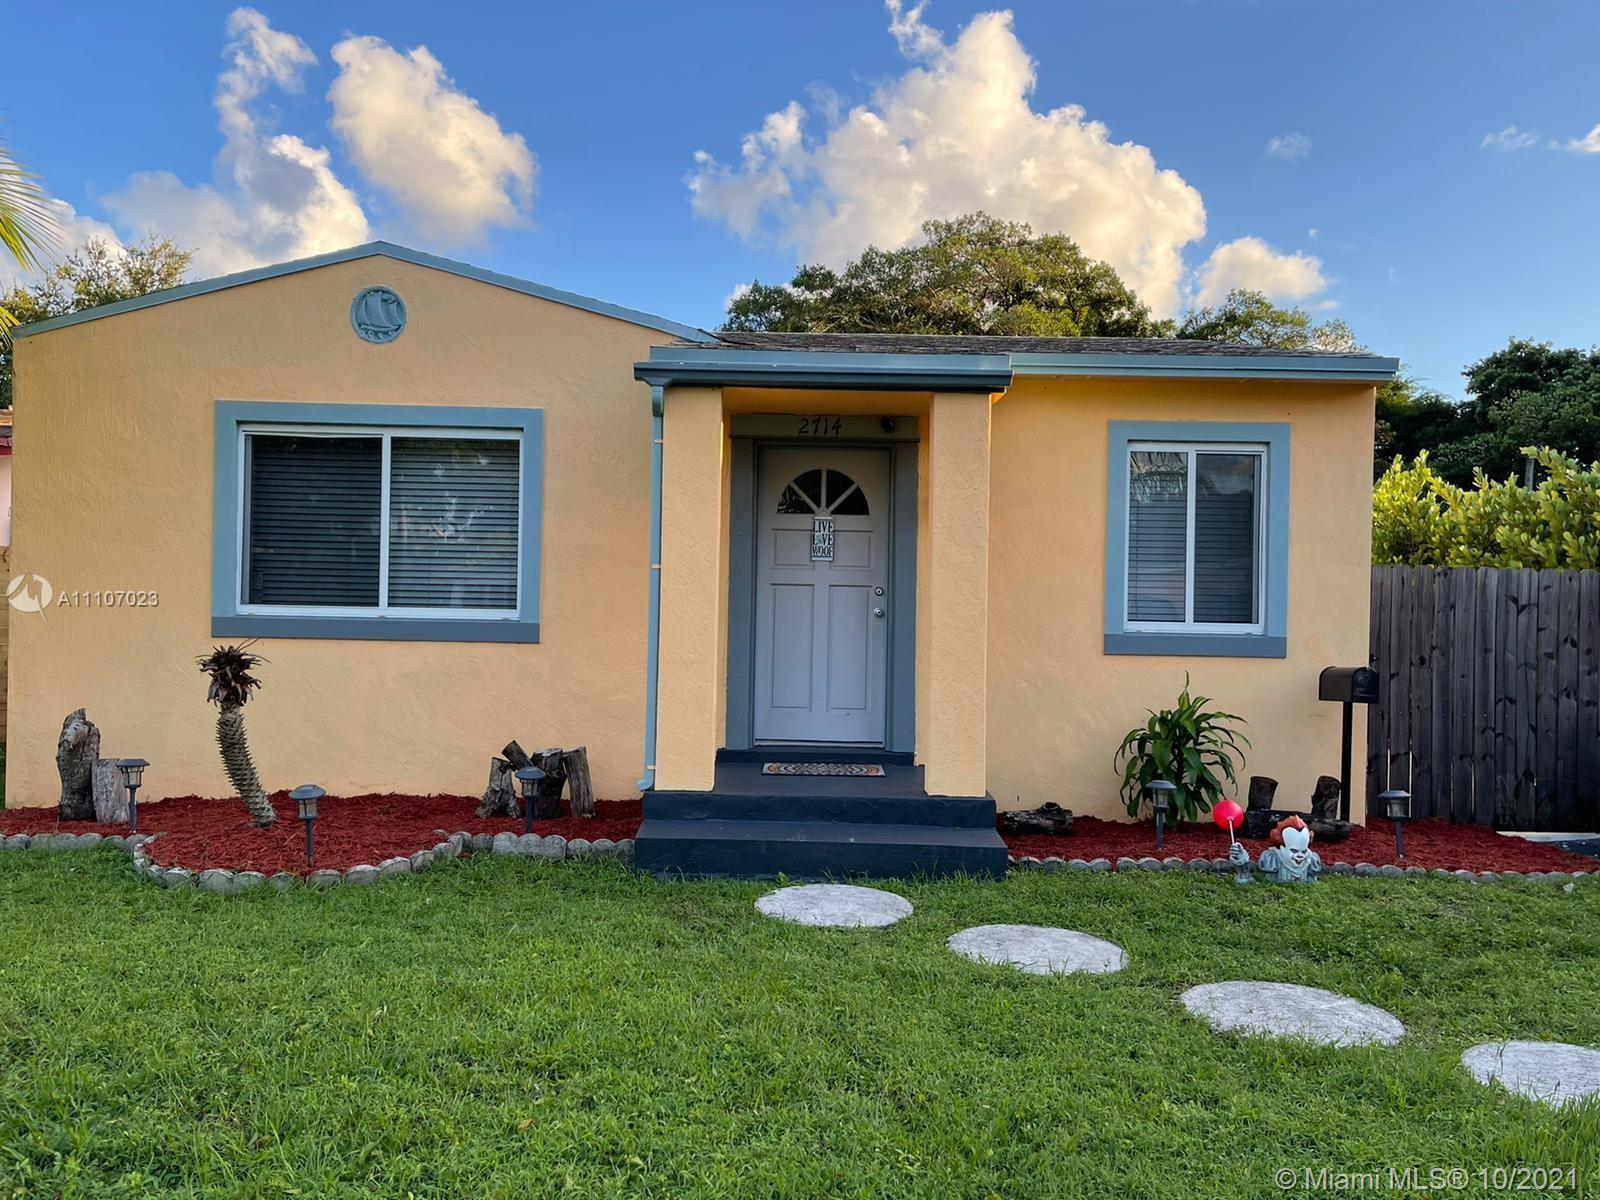 Hollywood Little Ranches, 2714 Taylor St, Hollywood, Florida 33020